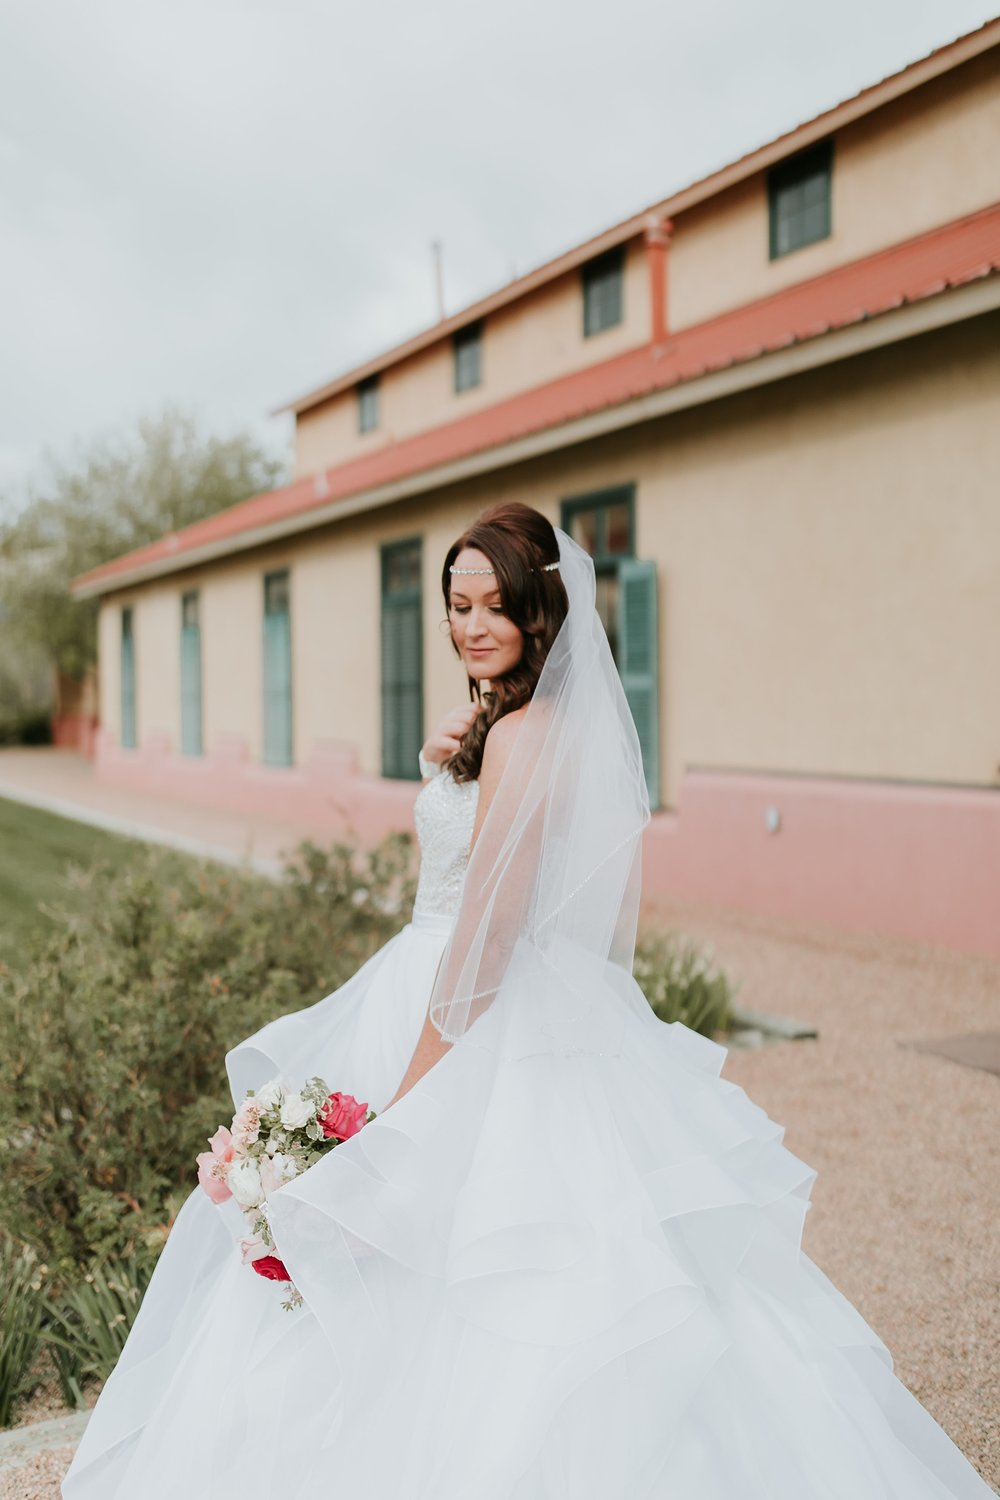 Alicia+lucia+photography+-+albuquerque+wedding+photographer+-+santa+fe+wedding+photography+-+new+mexico+wedding+photographer+-+new+mexico+engagement+-+la+mesita+ranch+wedding+-+la+mesita+ranch+spring+wedding_0062.jpg